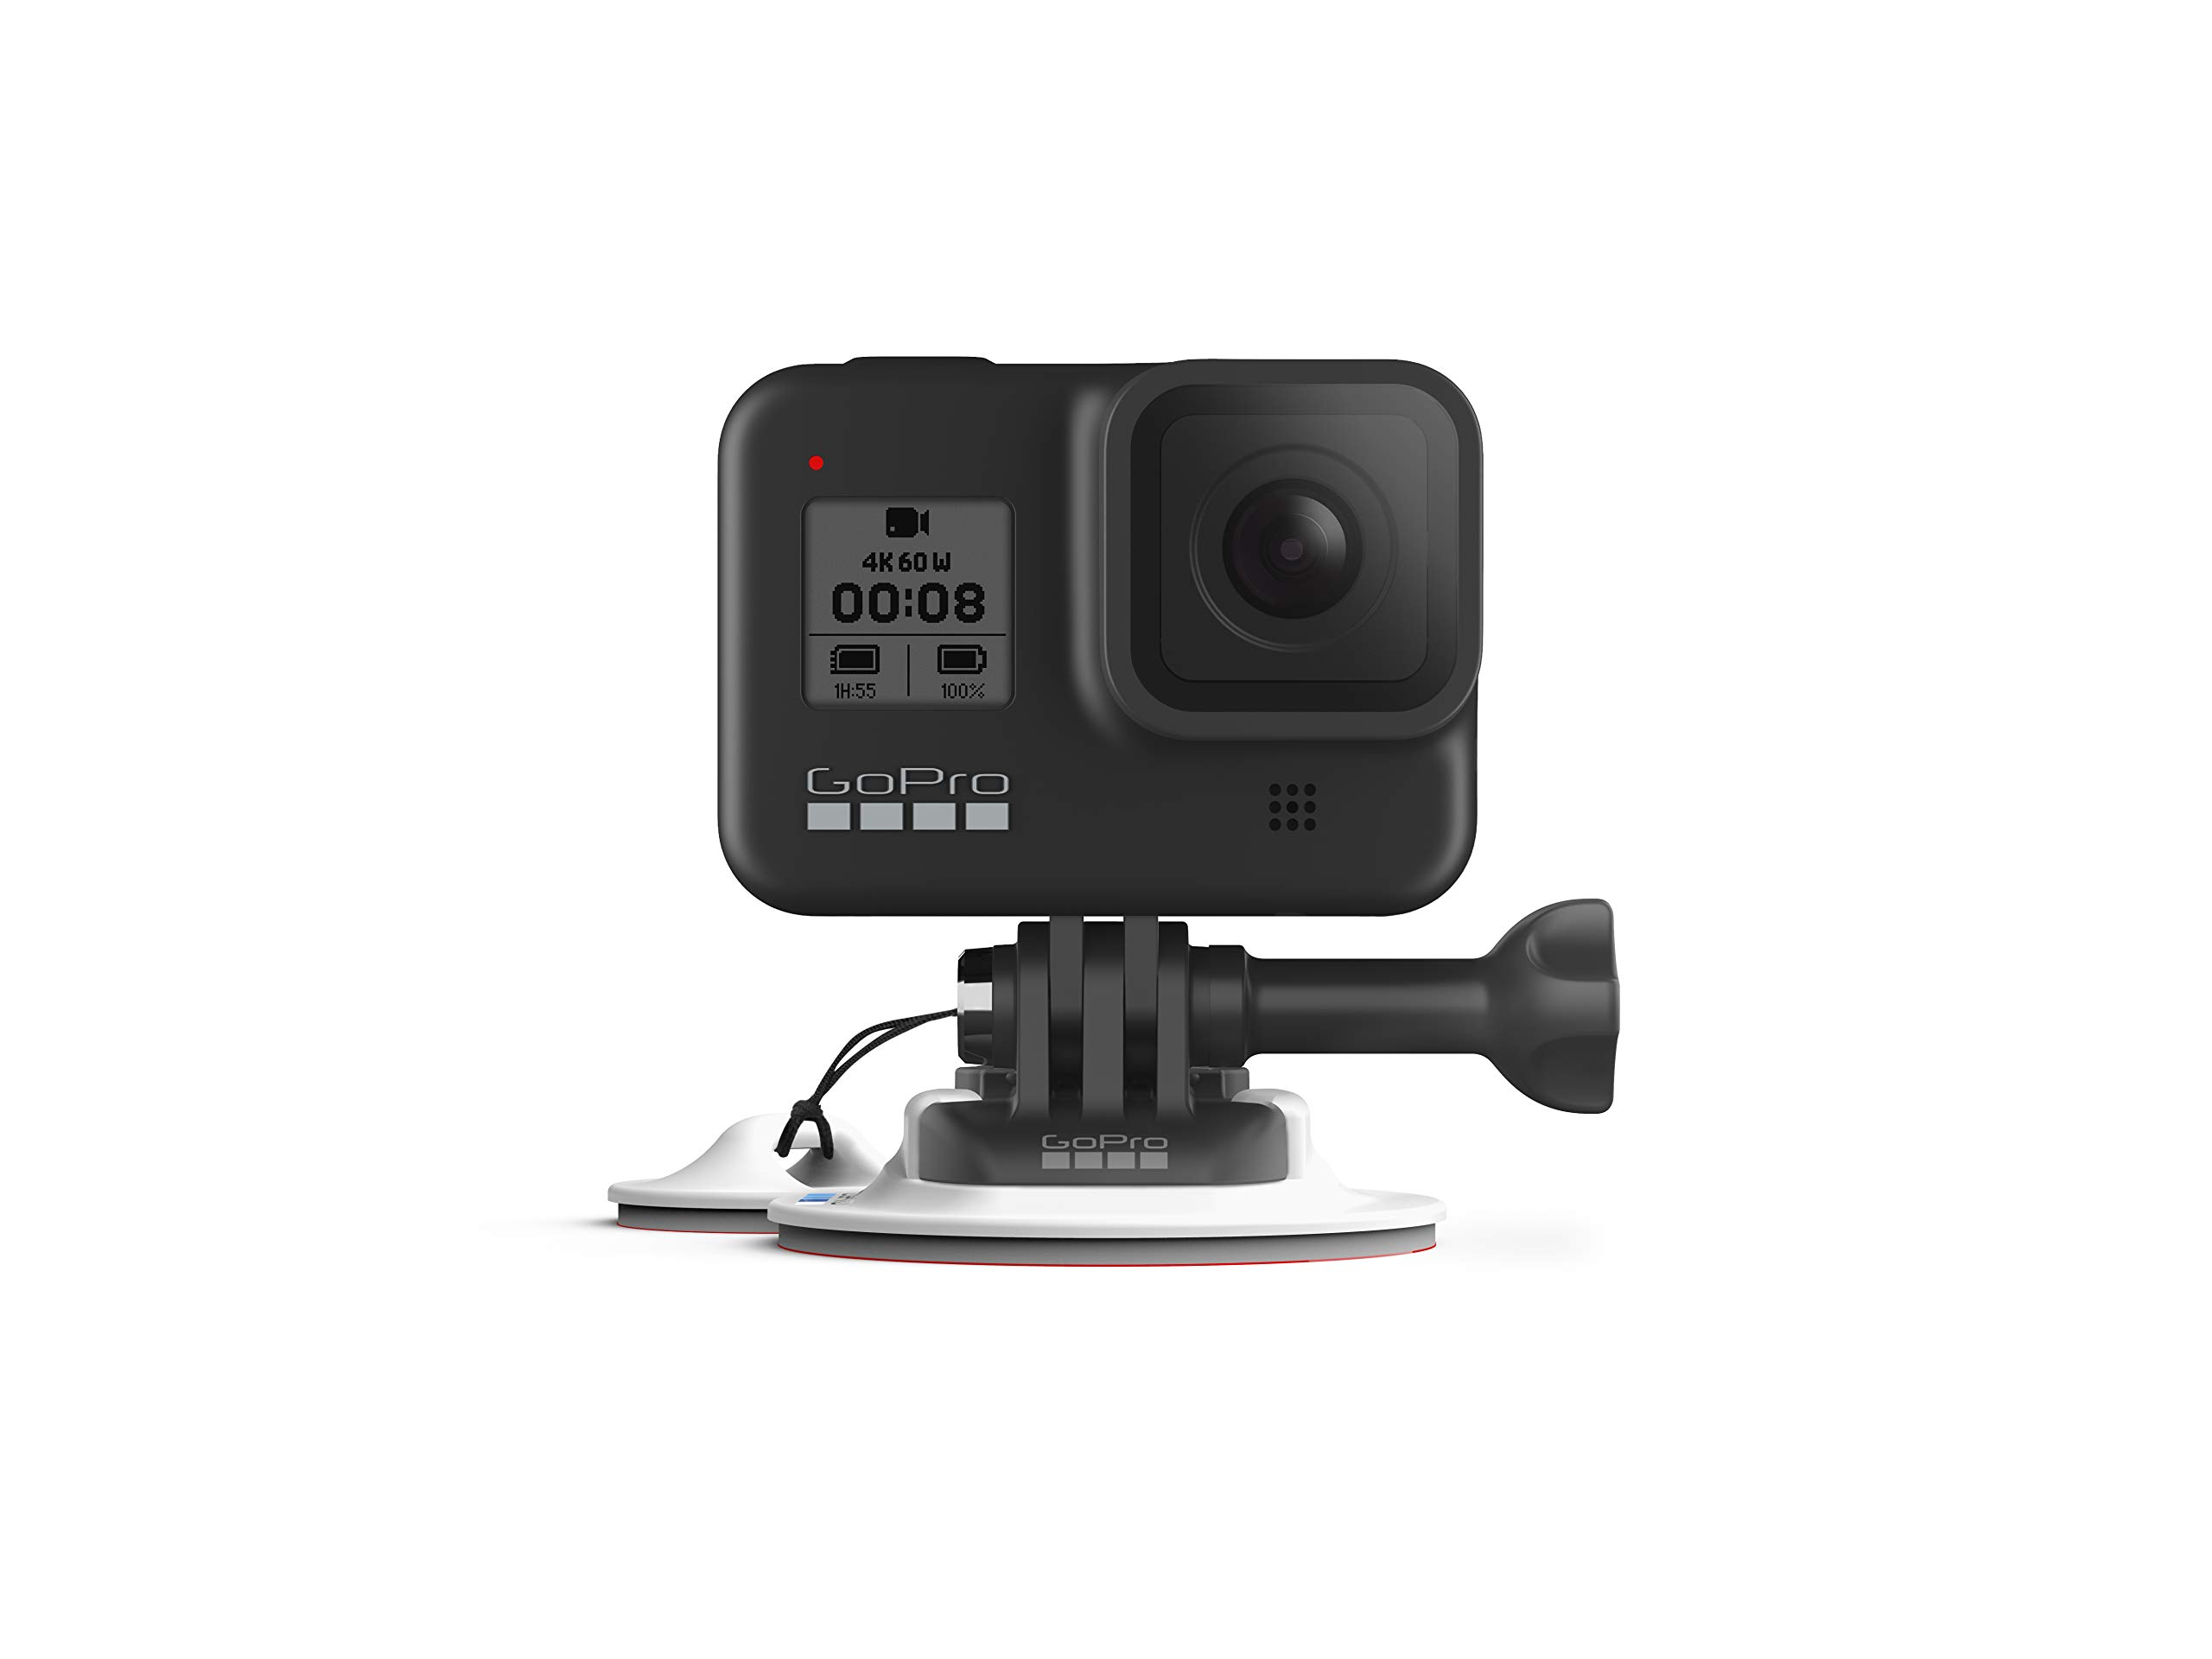 GoPro Surfboard Mounts (All GoPro Cameras) - Official GoPro Mount by GoPro